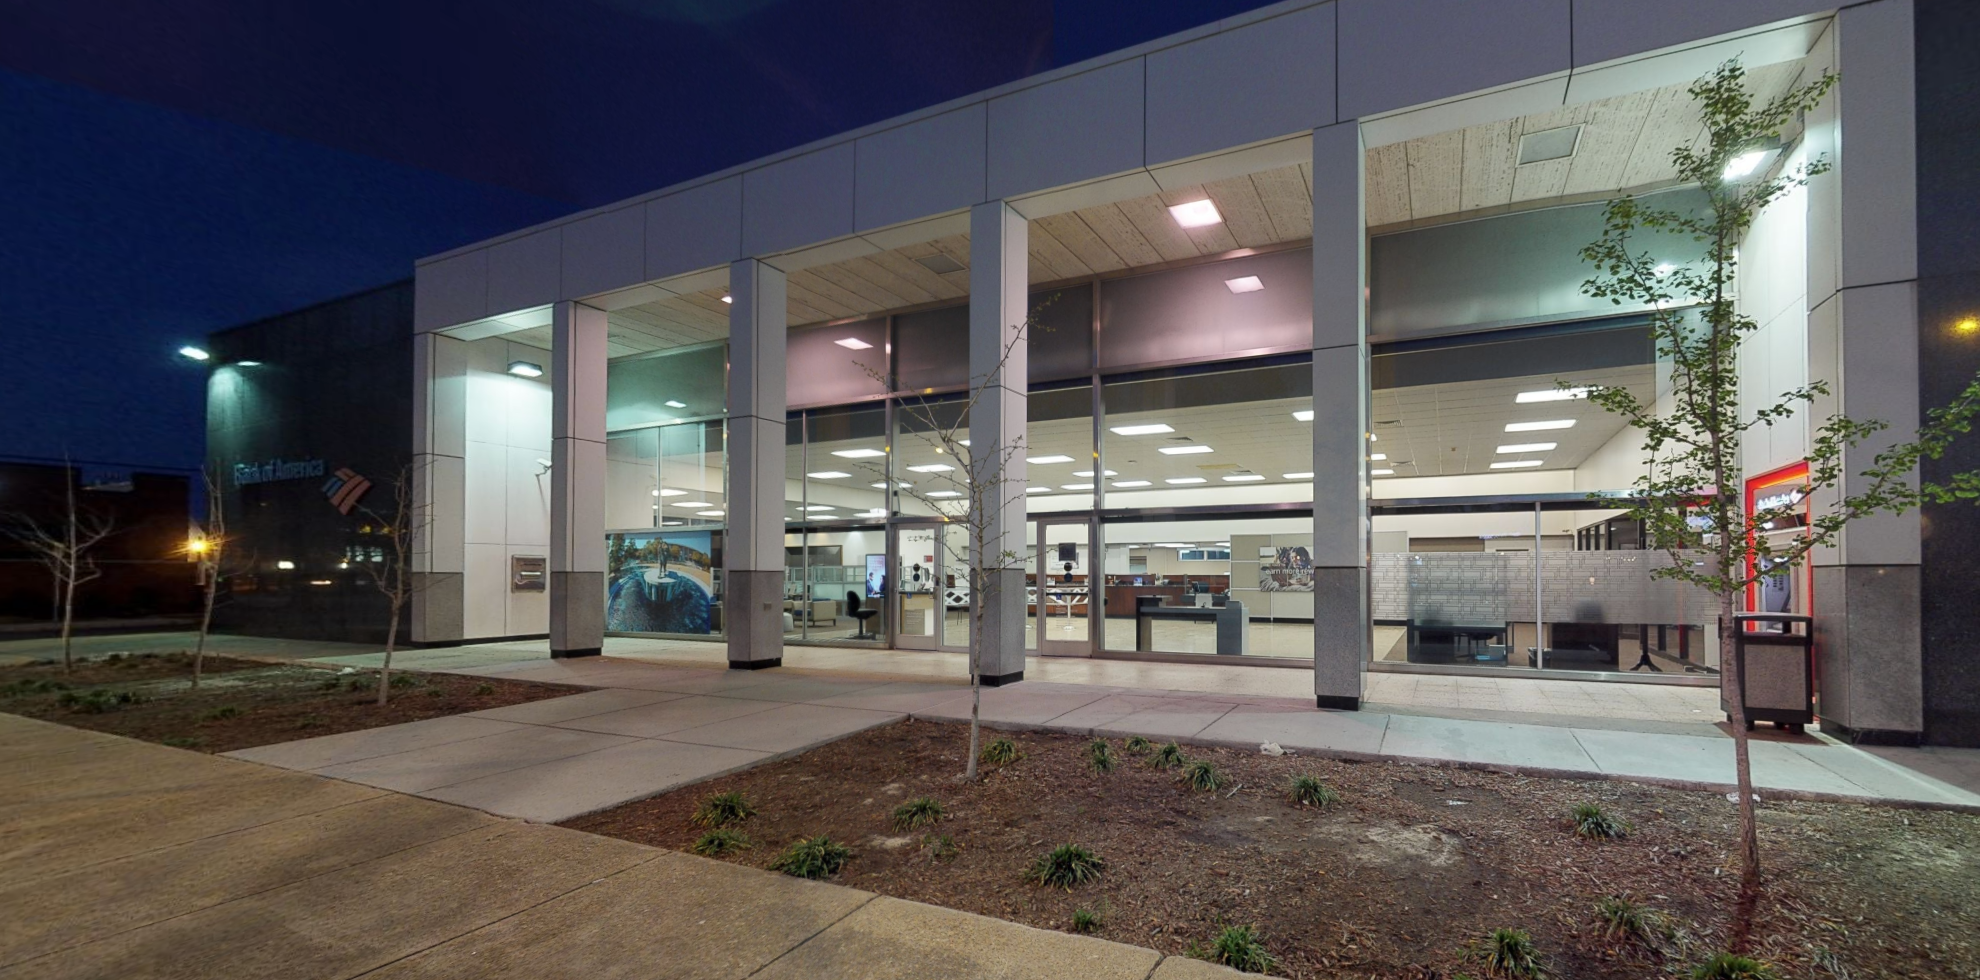 Bank of America financial center with drive-thru ATM   1916 Colonial Ave, Norfolk, VA 23517